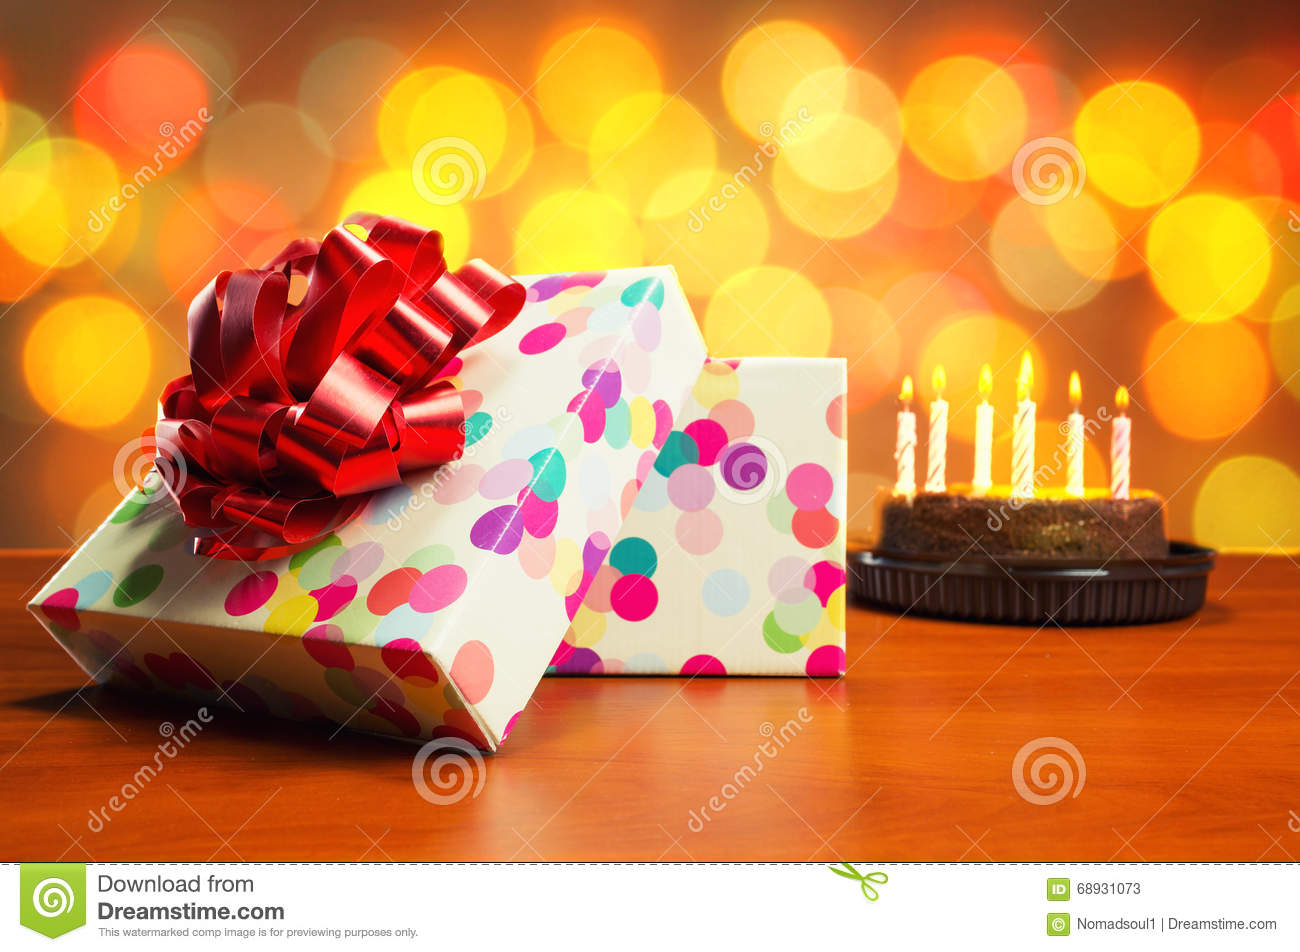 Remarkable Birthday Cake And Presents Stock Image Image Of Colorful 68931073 Funny Birthday Cards Online Chimdamsfinfo